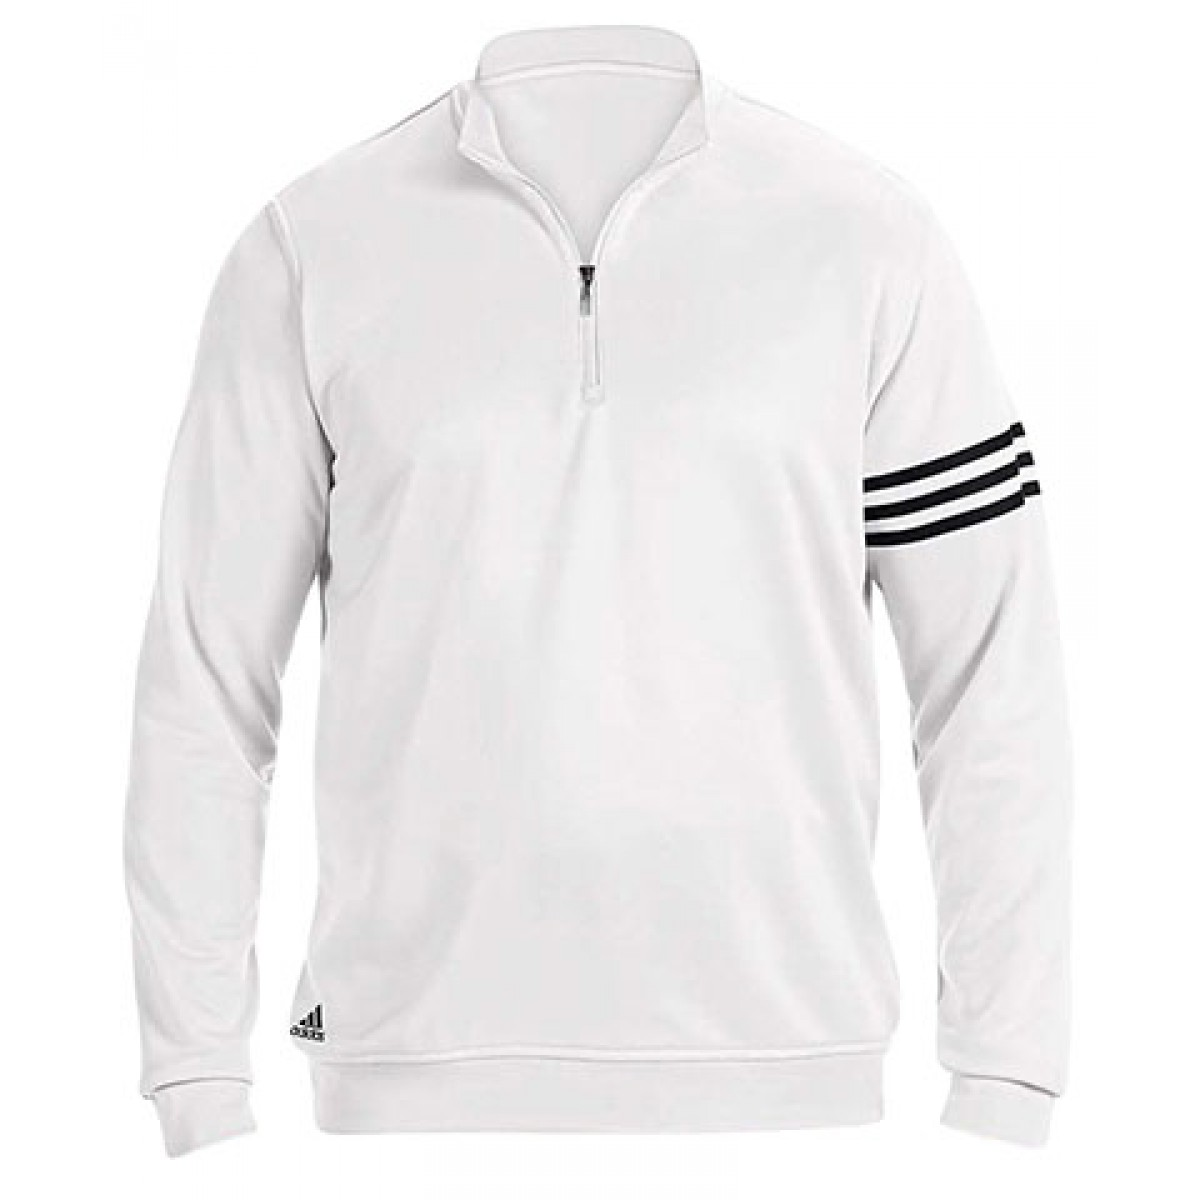 Adidas Men's 3-Stripes Pullover